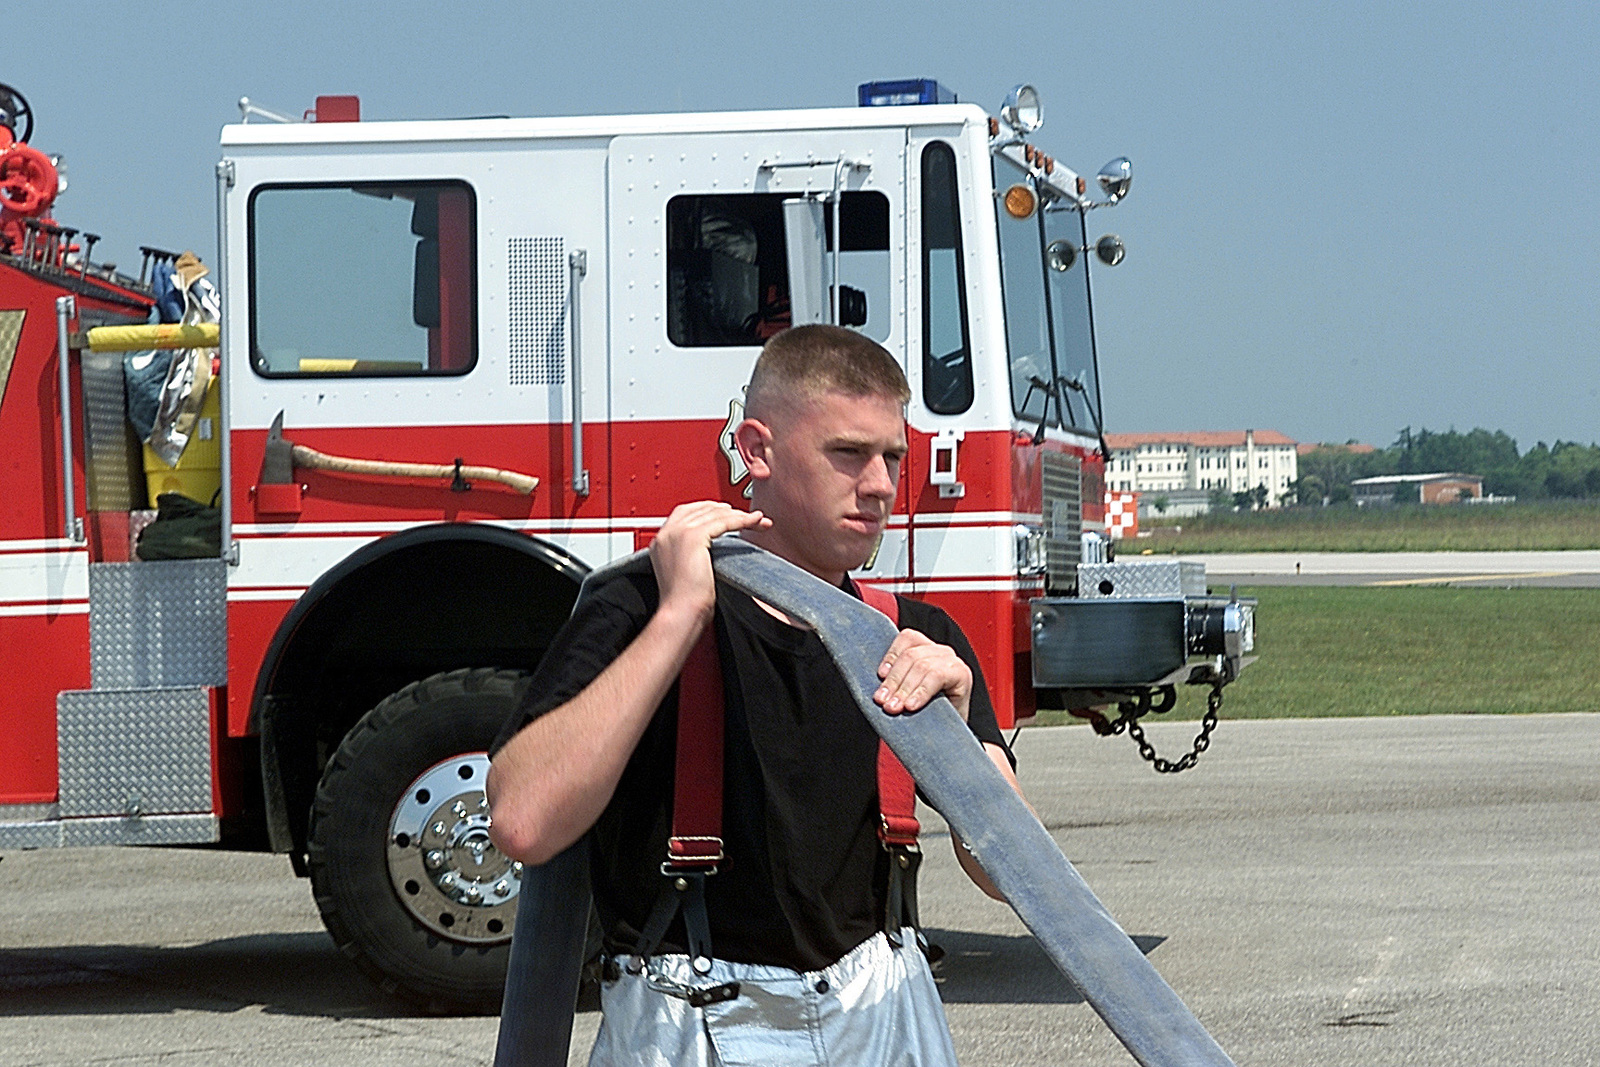 AIRMAN (AMN), James Burke, USAF, Fire Protection Specialists, 31ST Civil Engineer Squadron, Fire Protection Flight, walks the water out of a fire hose before loading it onto the P-24 Structural Pumper Fire Truck during a fire fighters training course at Aviano AB, Italy